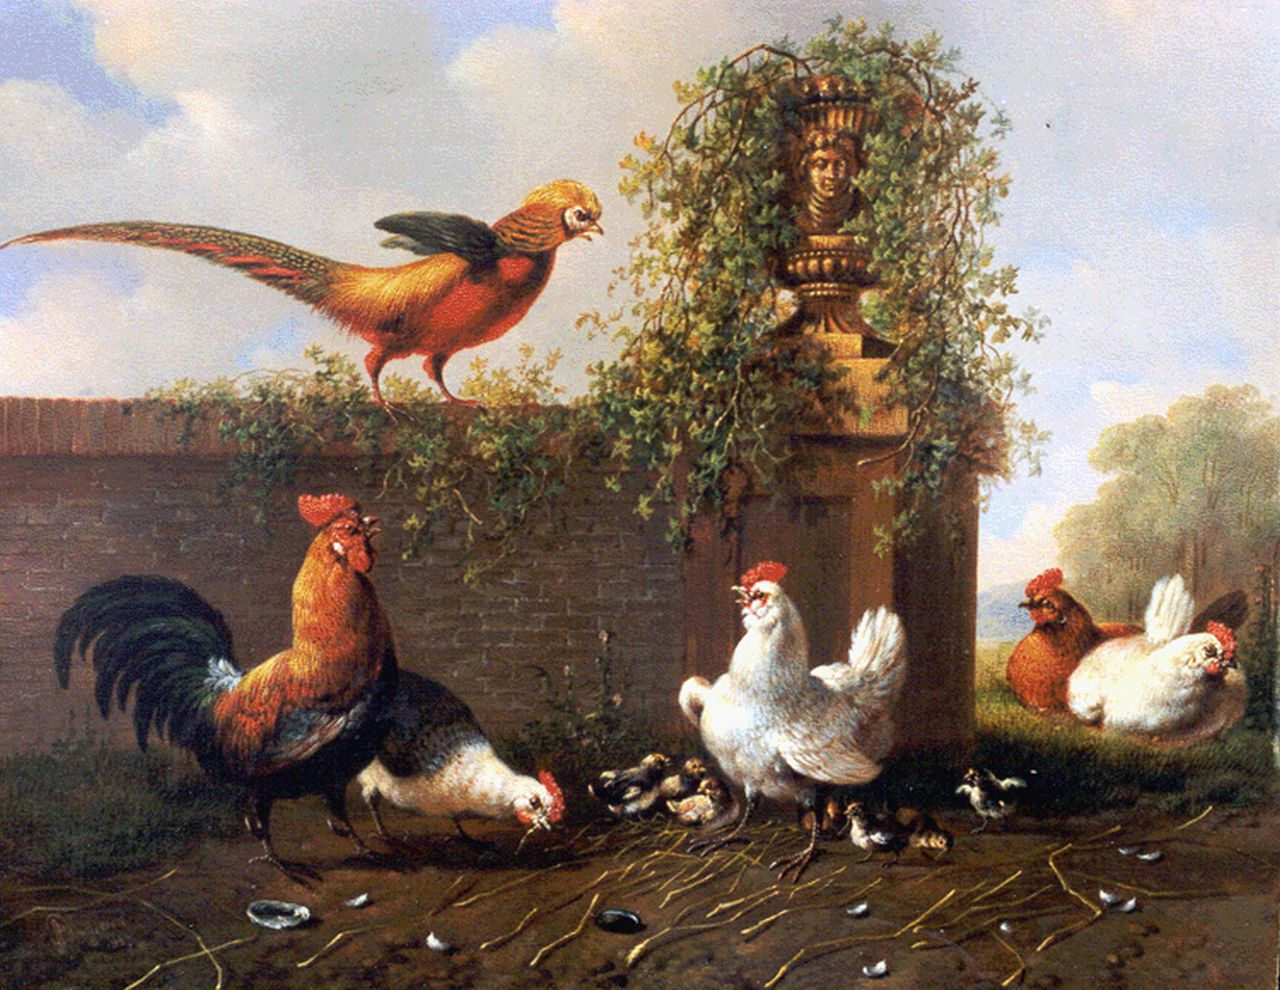 Verhoesen A.  | Albertus Verhoesen, Poultry in a classical landscape, oil on panel 20.8 x 25.9 cm, signed l.l. and dated 1857